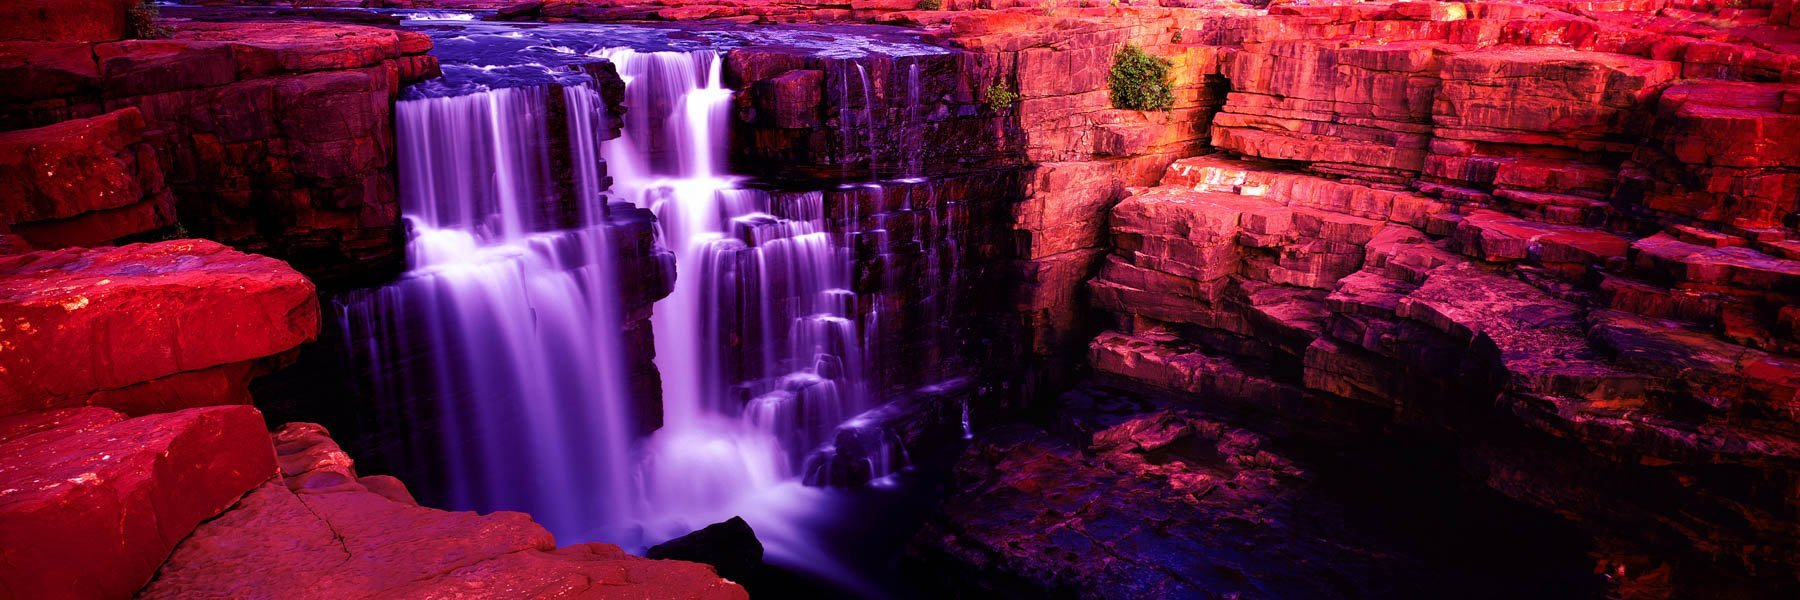 Water falling like soft satin down the tiers of Mitchell Falls, Kimberley, WA, Australia.